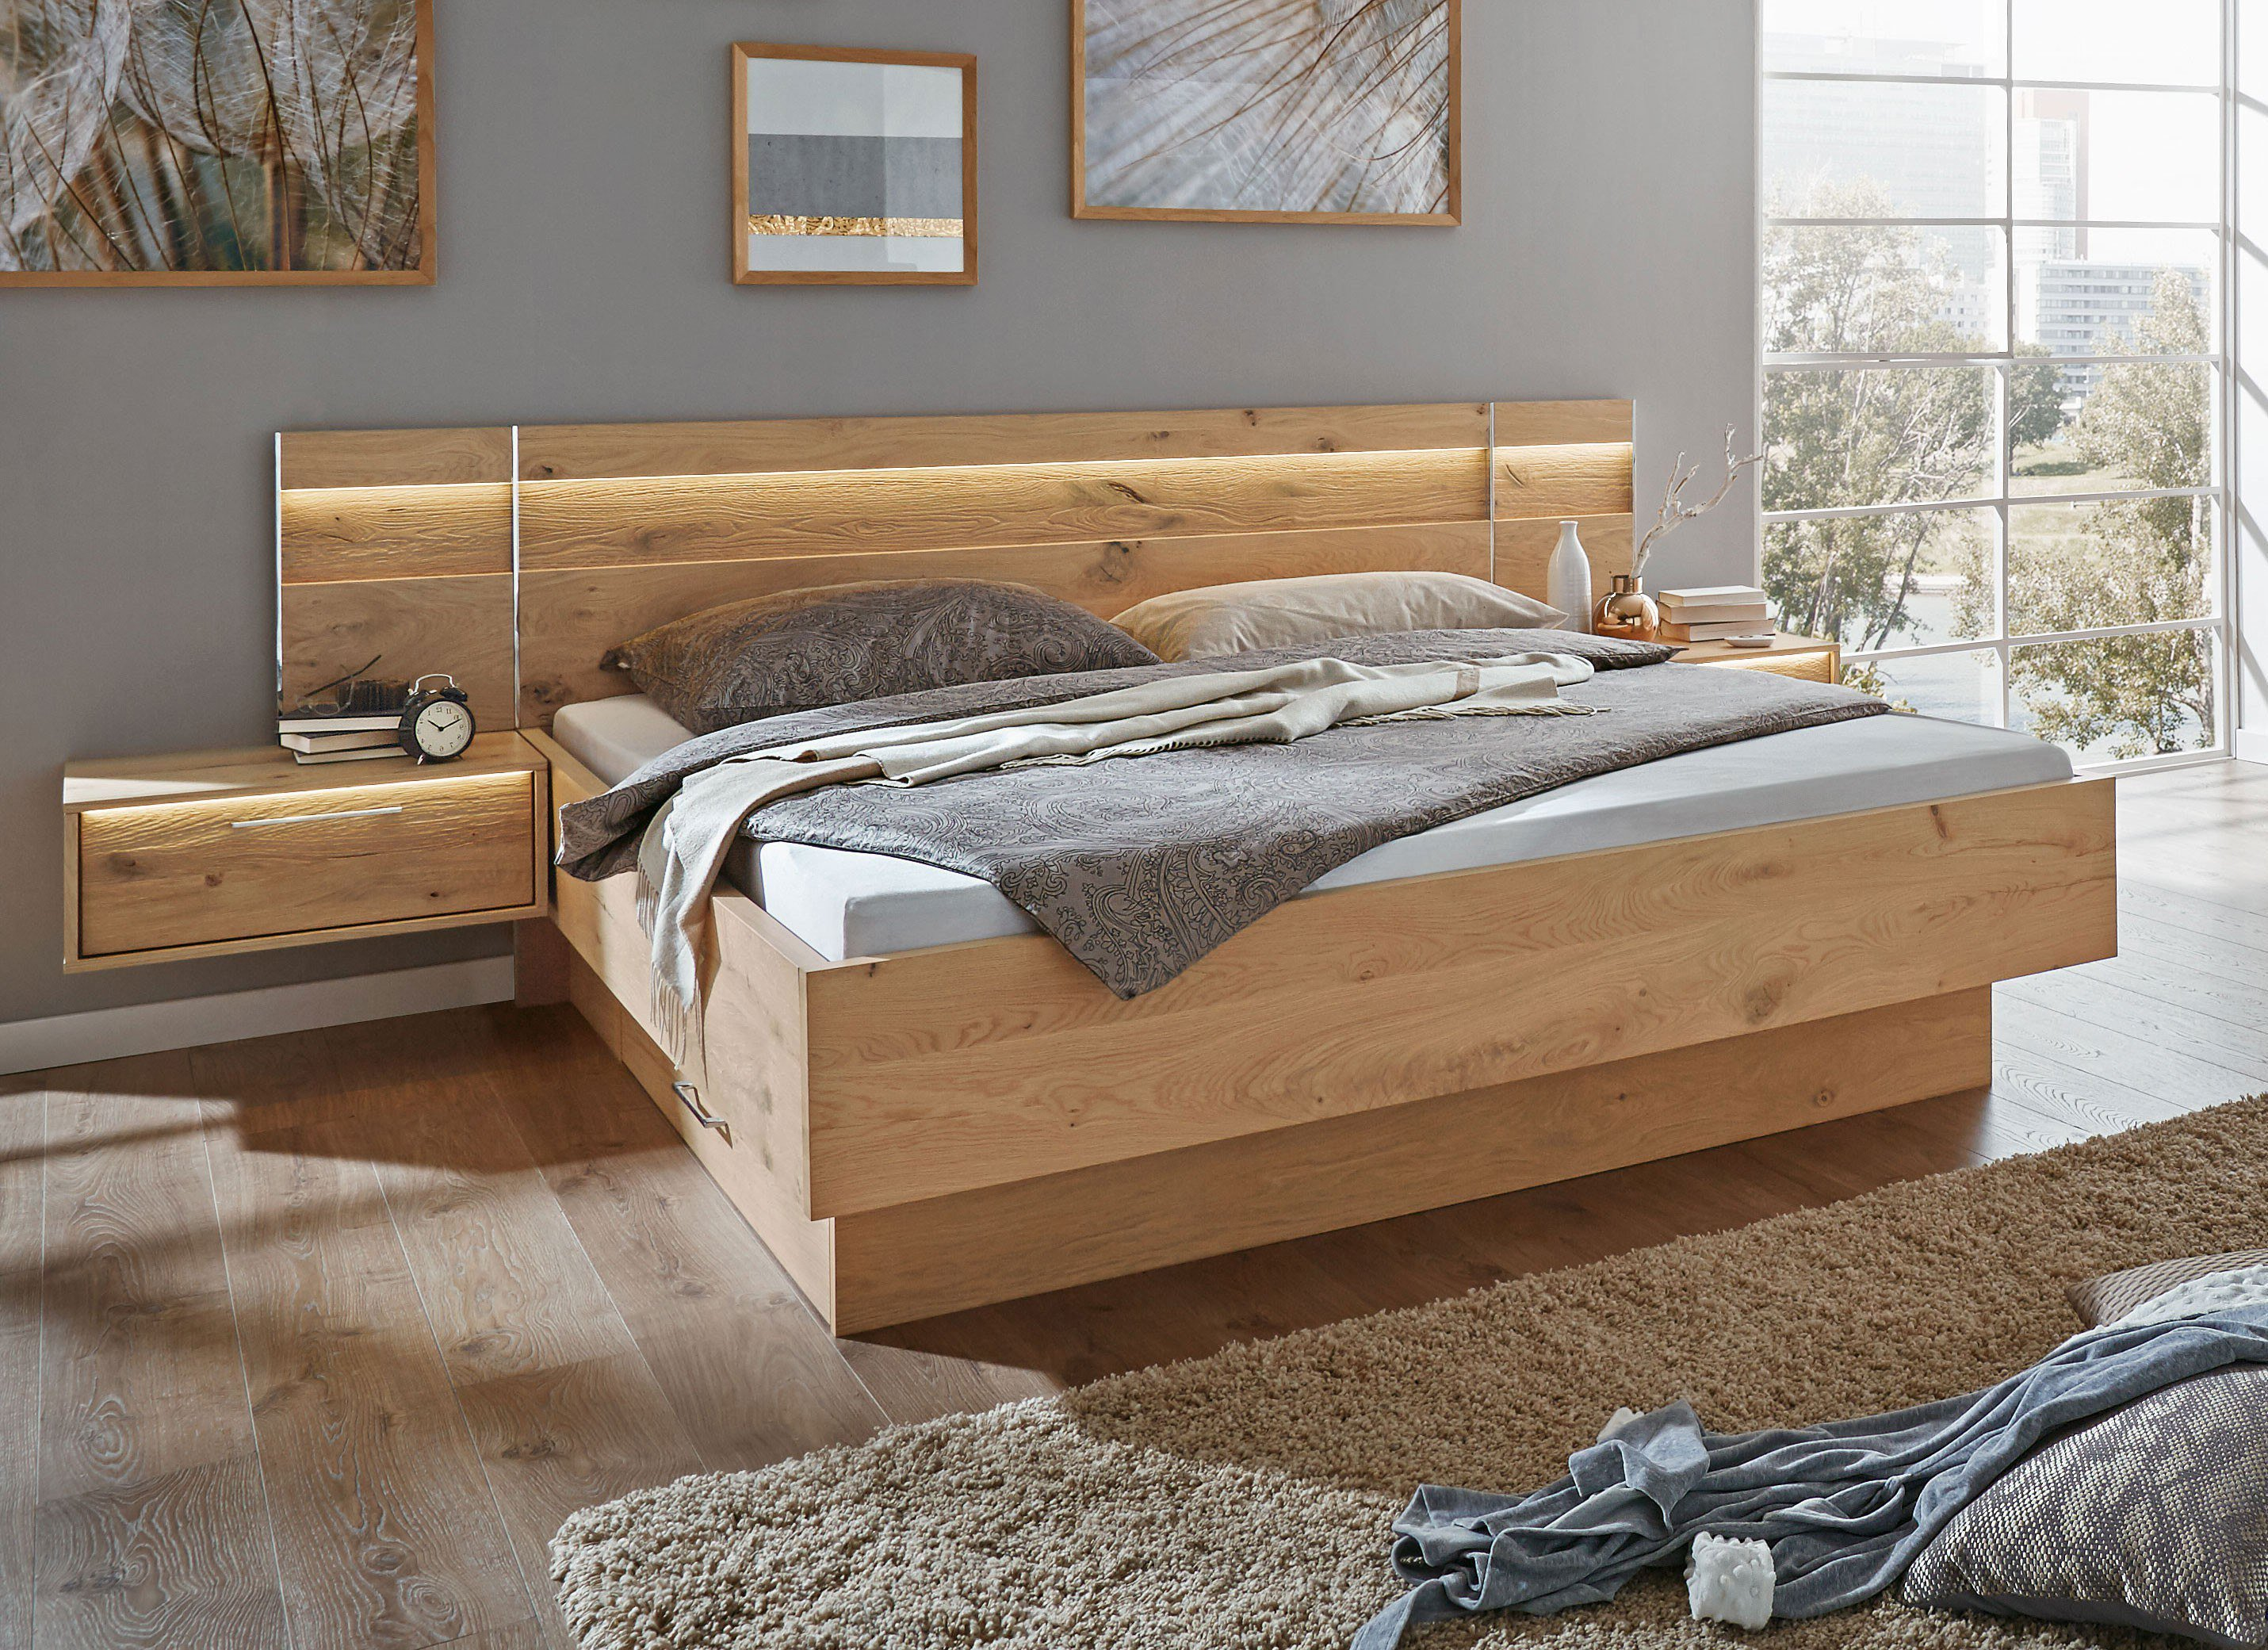 disselkamp cadiz schlafzimmer riffholz m bel letz ihr online shop. Black Bedroom Furniture Sets. Home Design Ideas